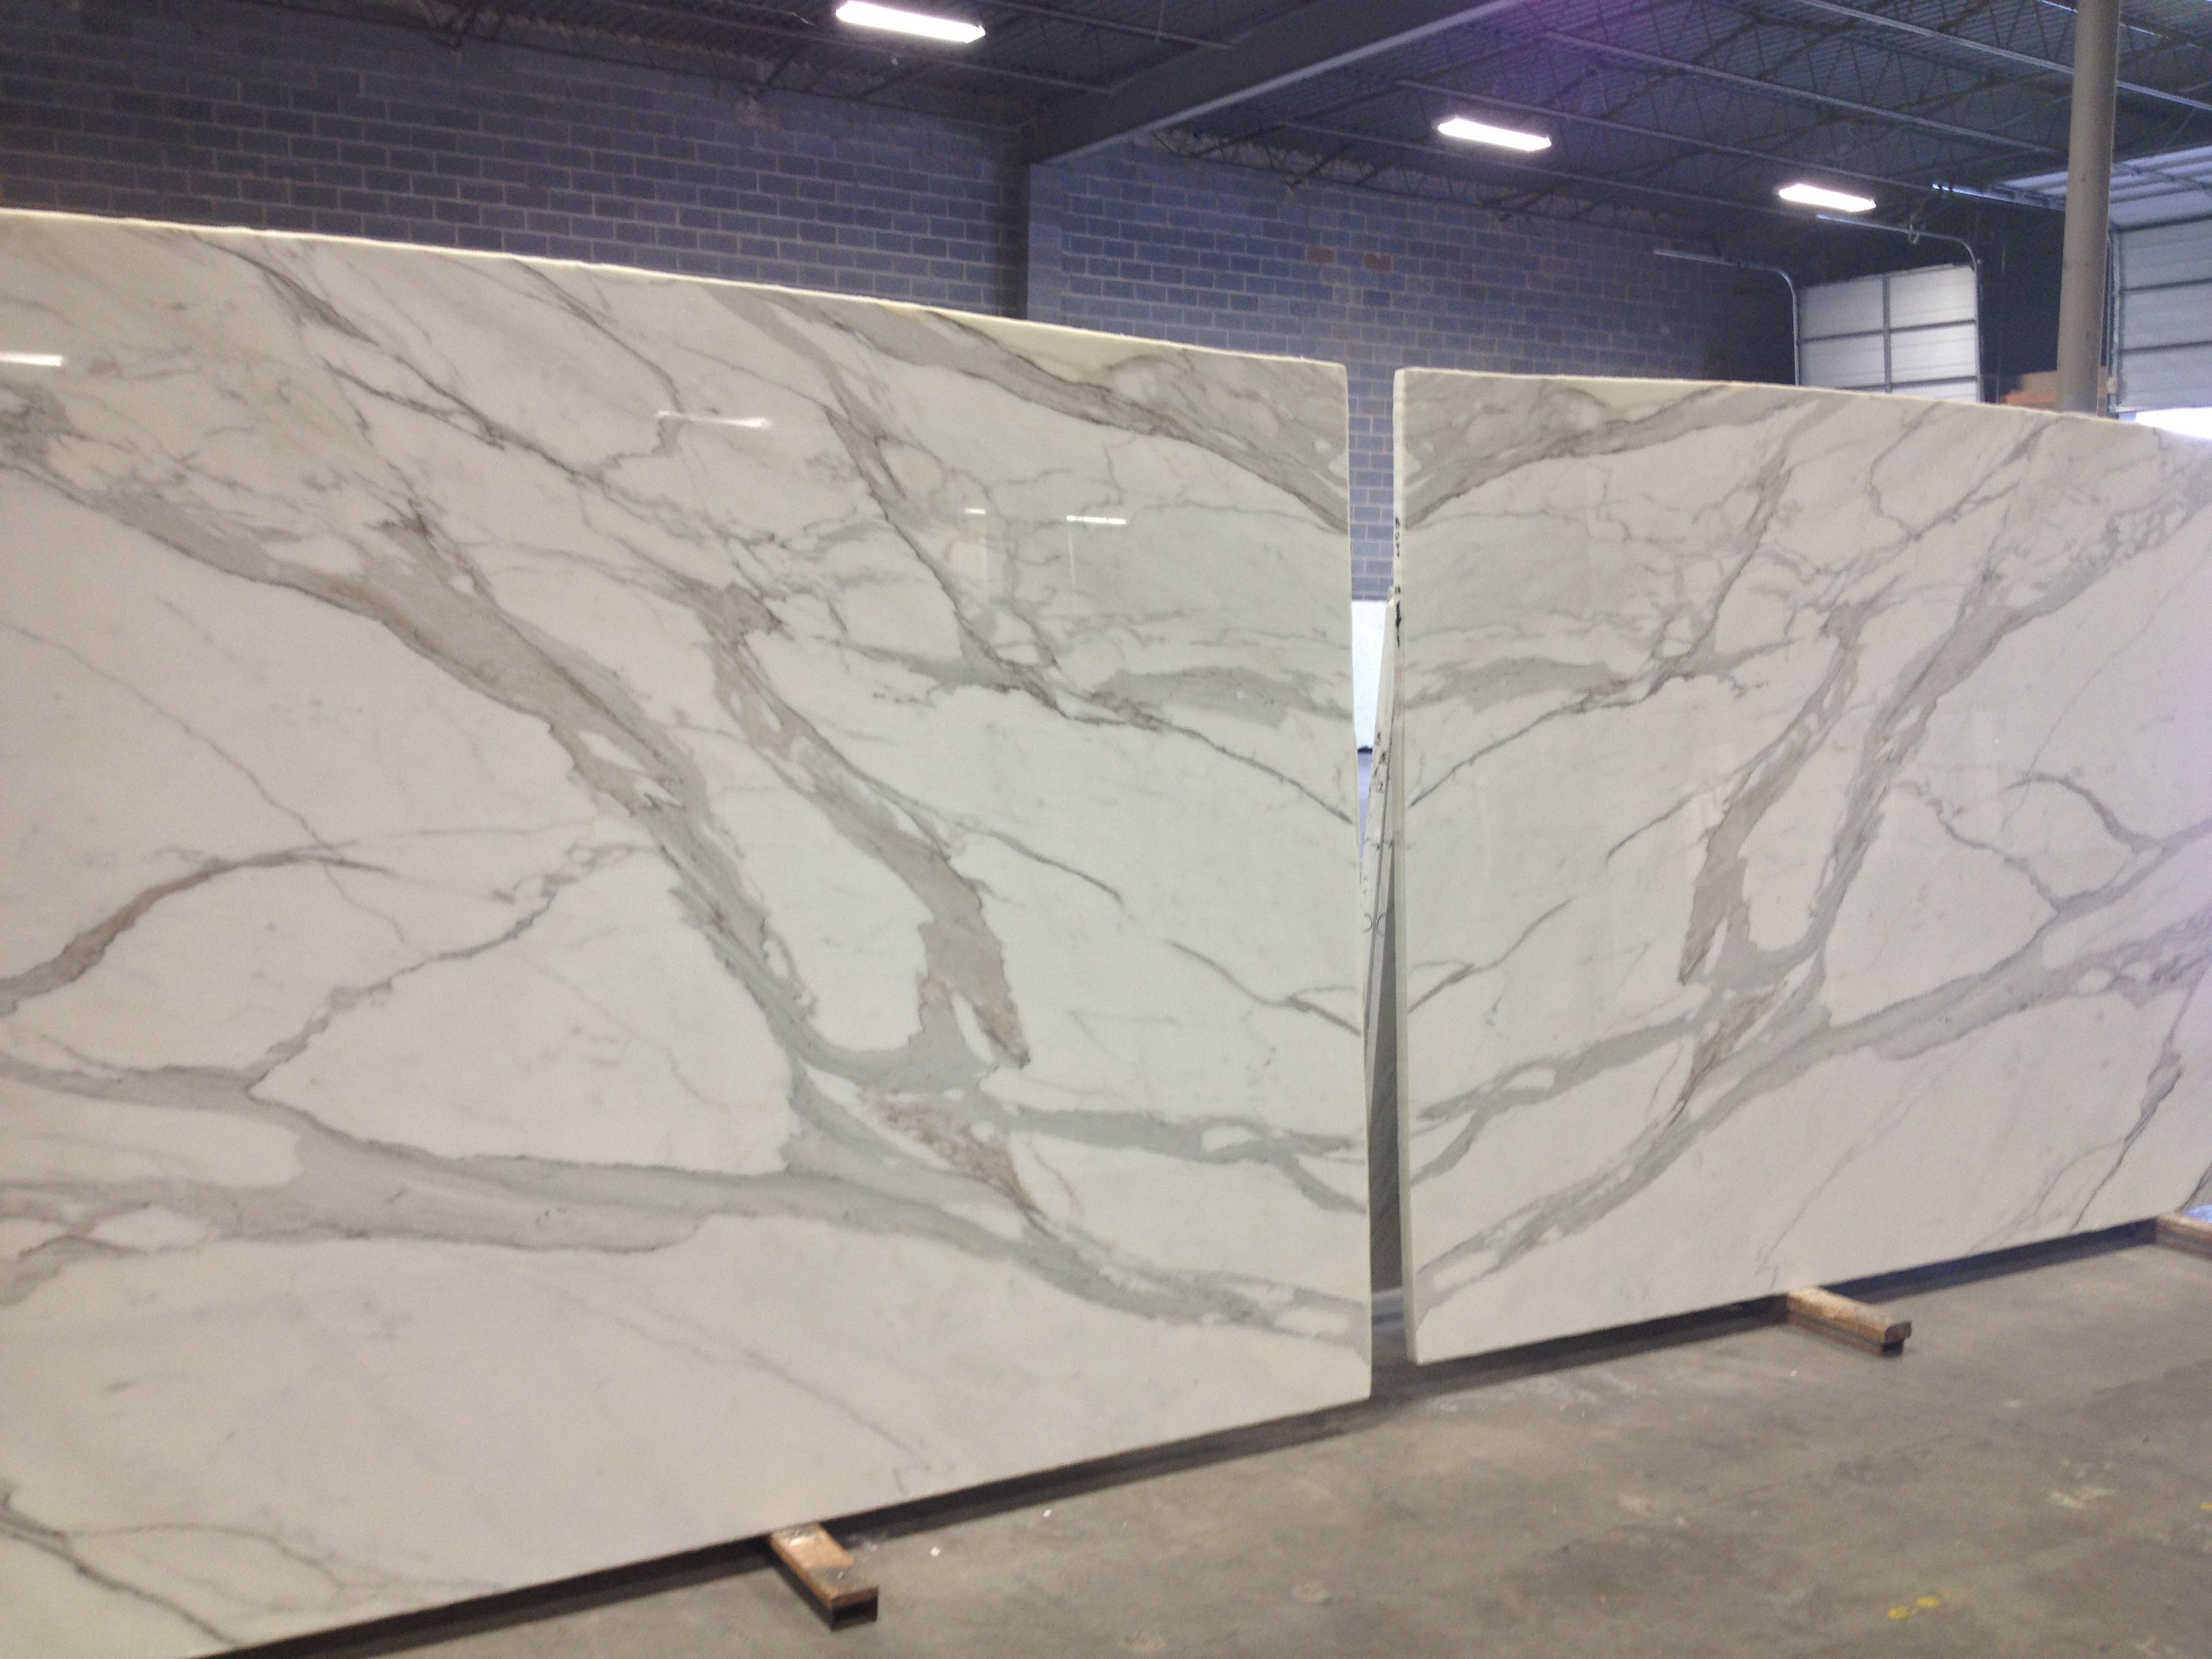 Book Matched Calacatta Borghini Marble Slabs Kitchen Countertops Countertops Rustic Counter